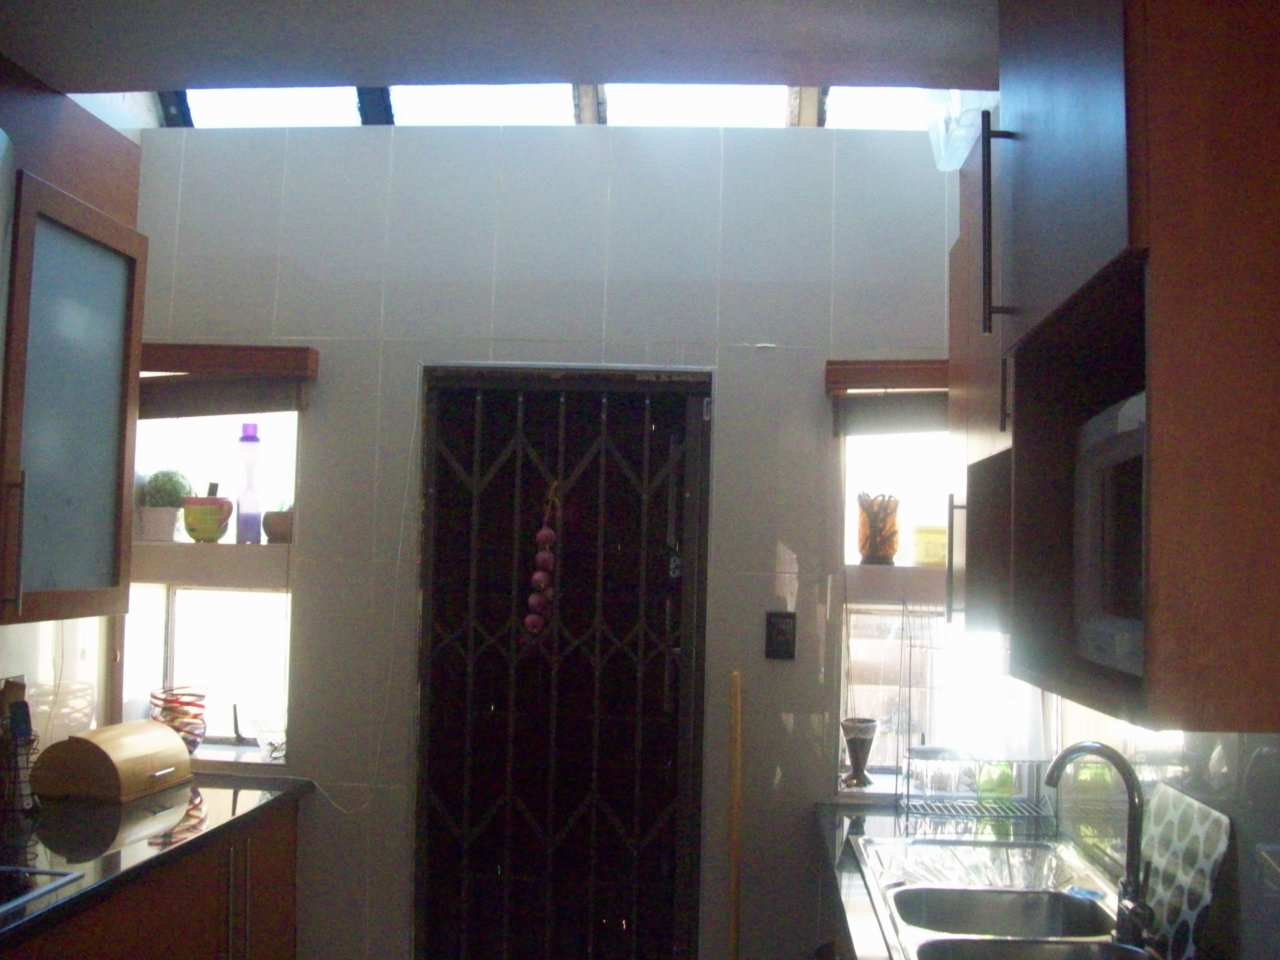 3 Bedroom Townhouse for sale in Bassonia ENT0071278 : photo#23